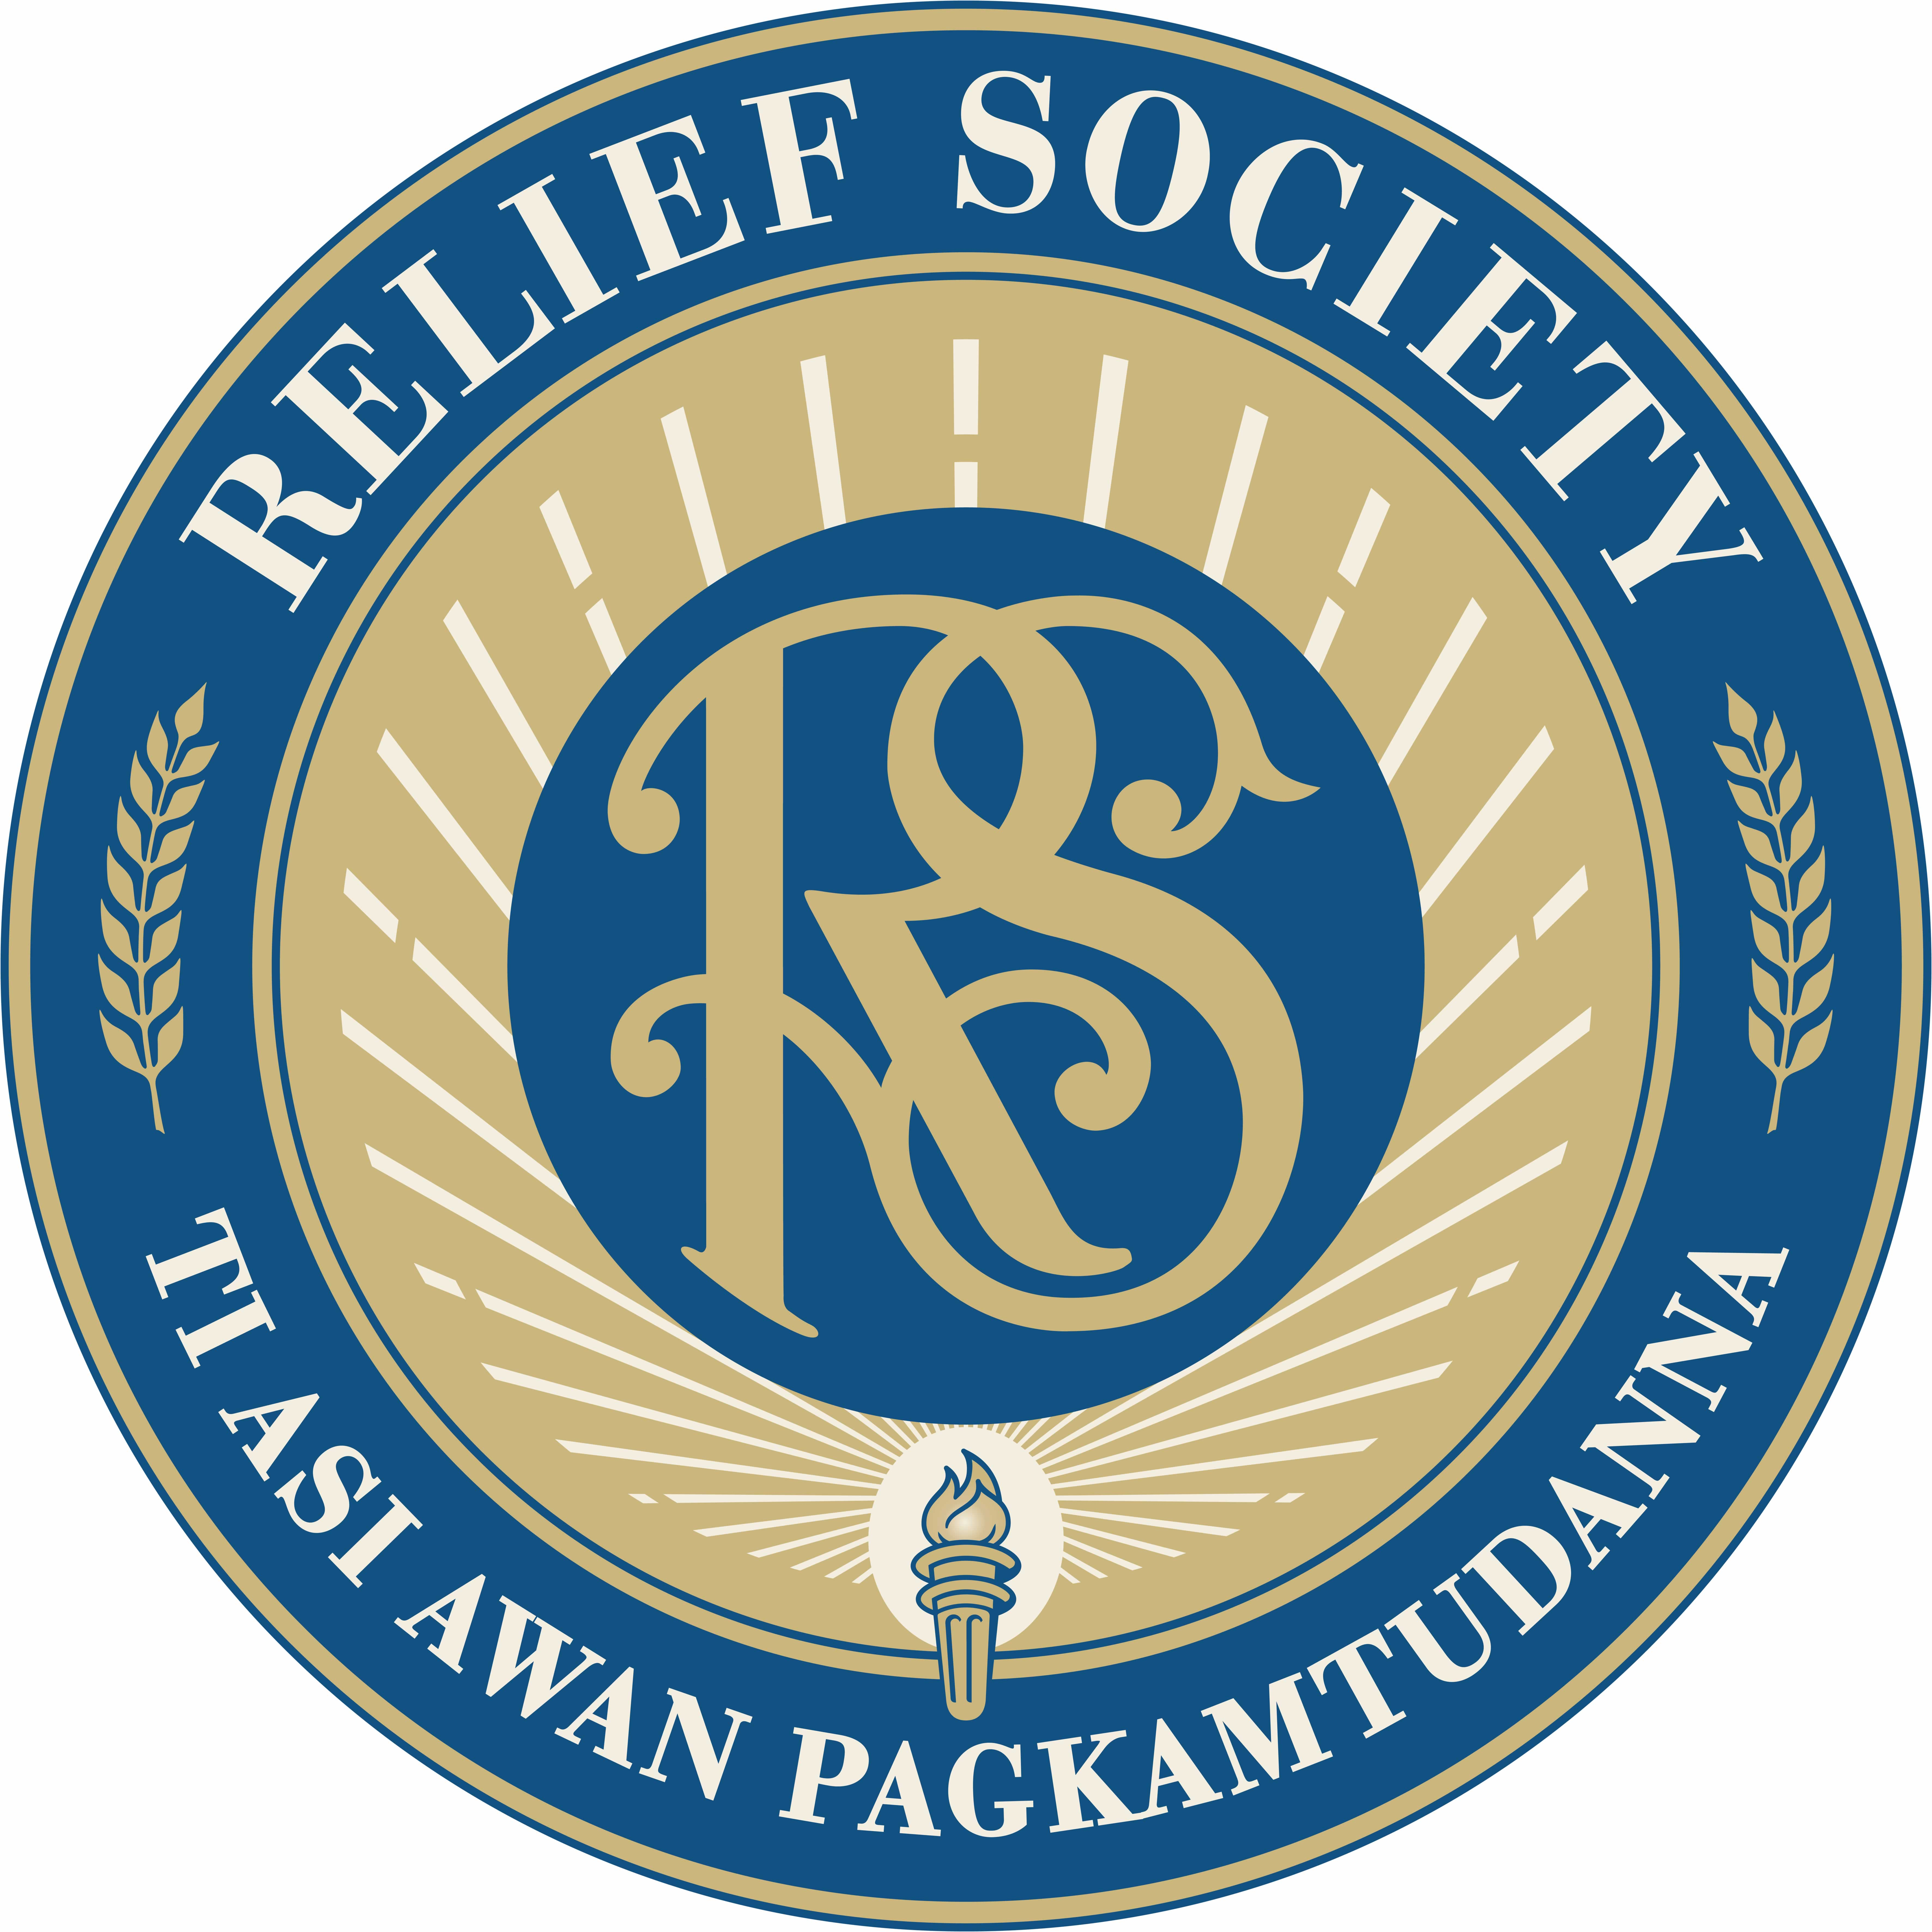 Relief Society Seal, Bookmark, and Poster.